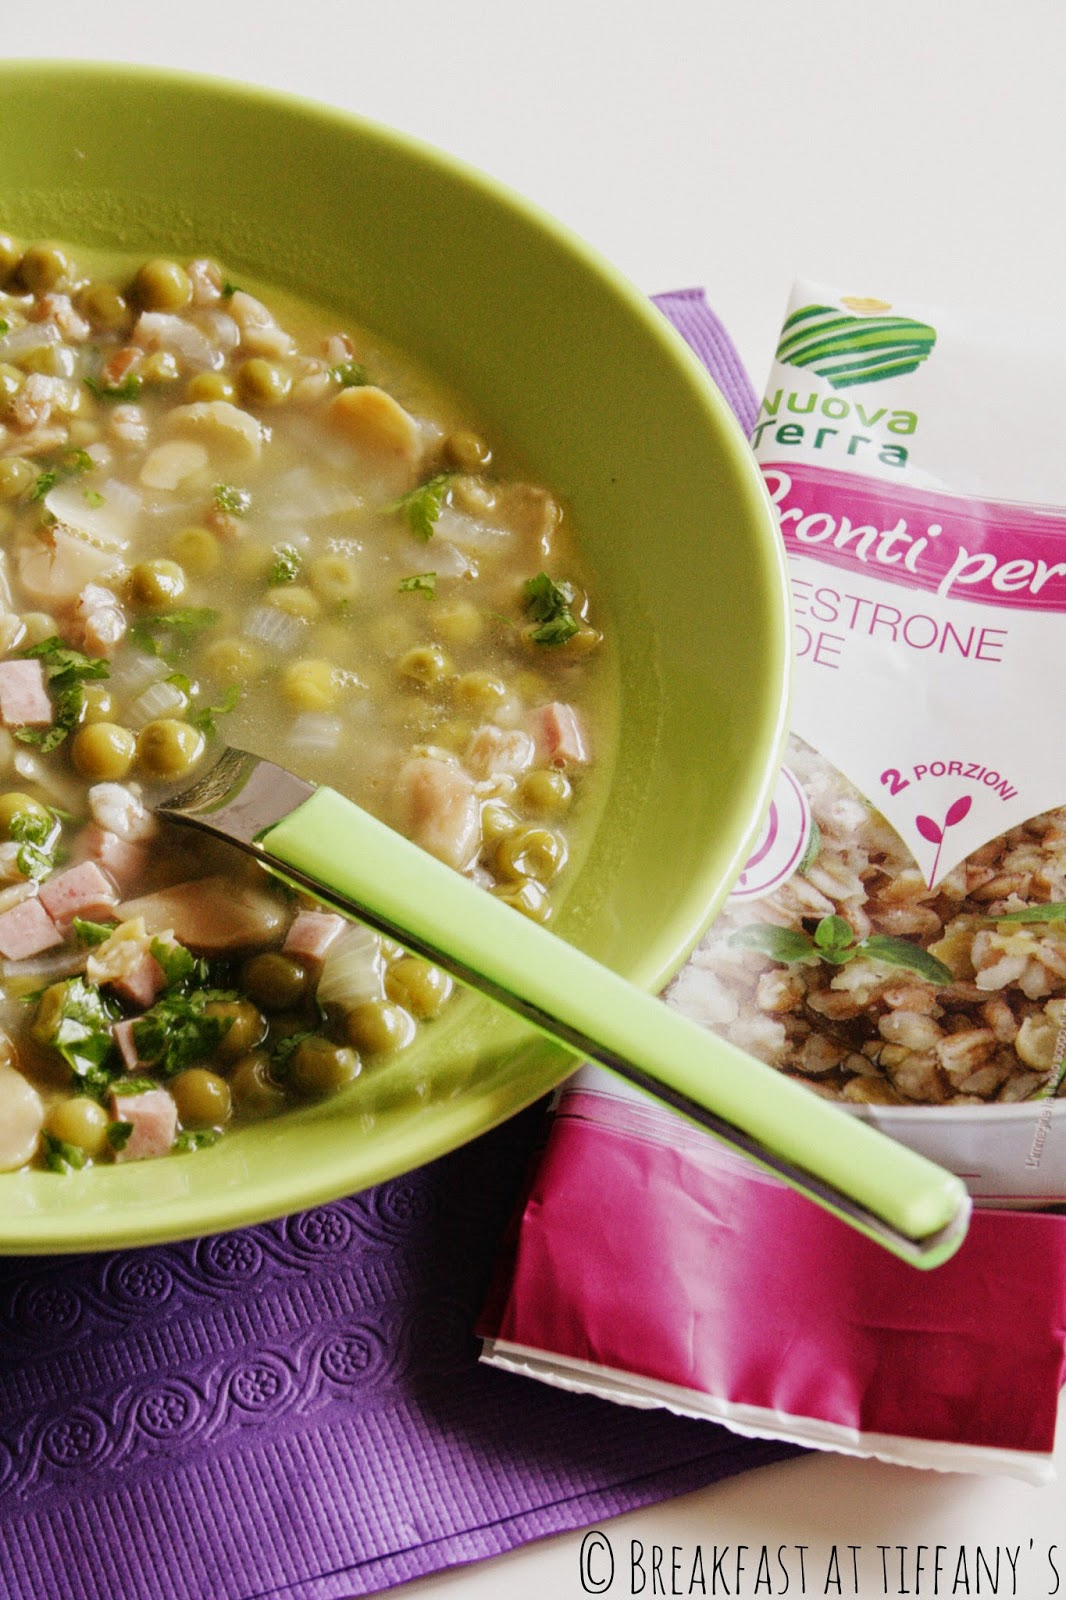 zuppa salutare con nuova terra / healthy soup recipe with terra nuova